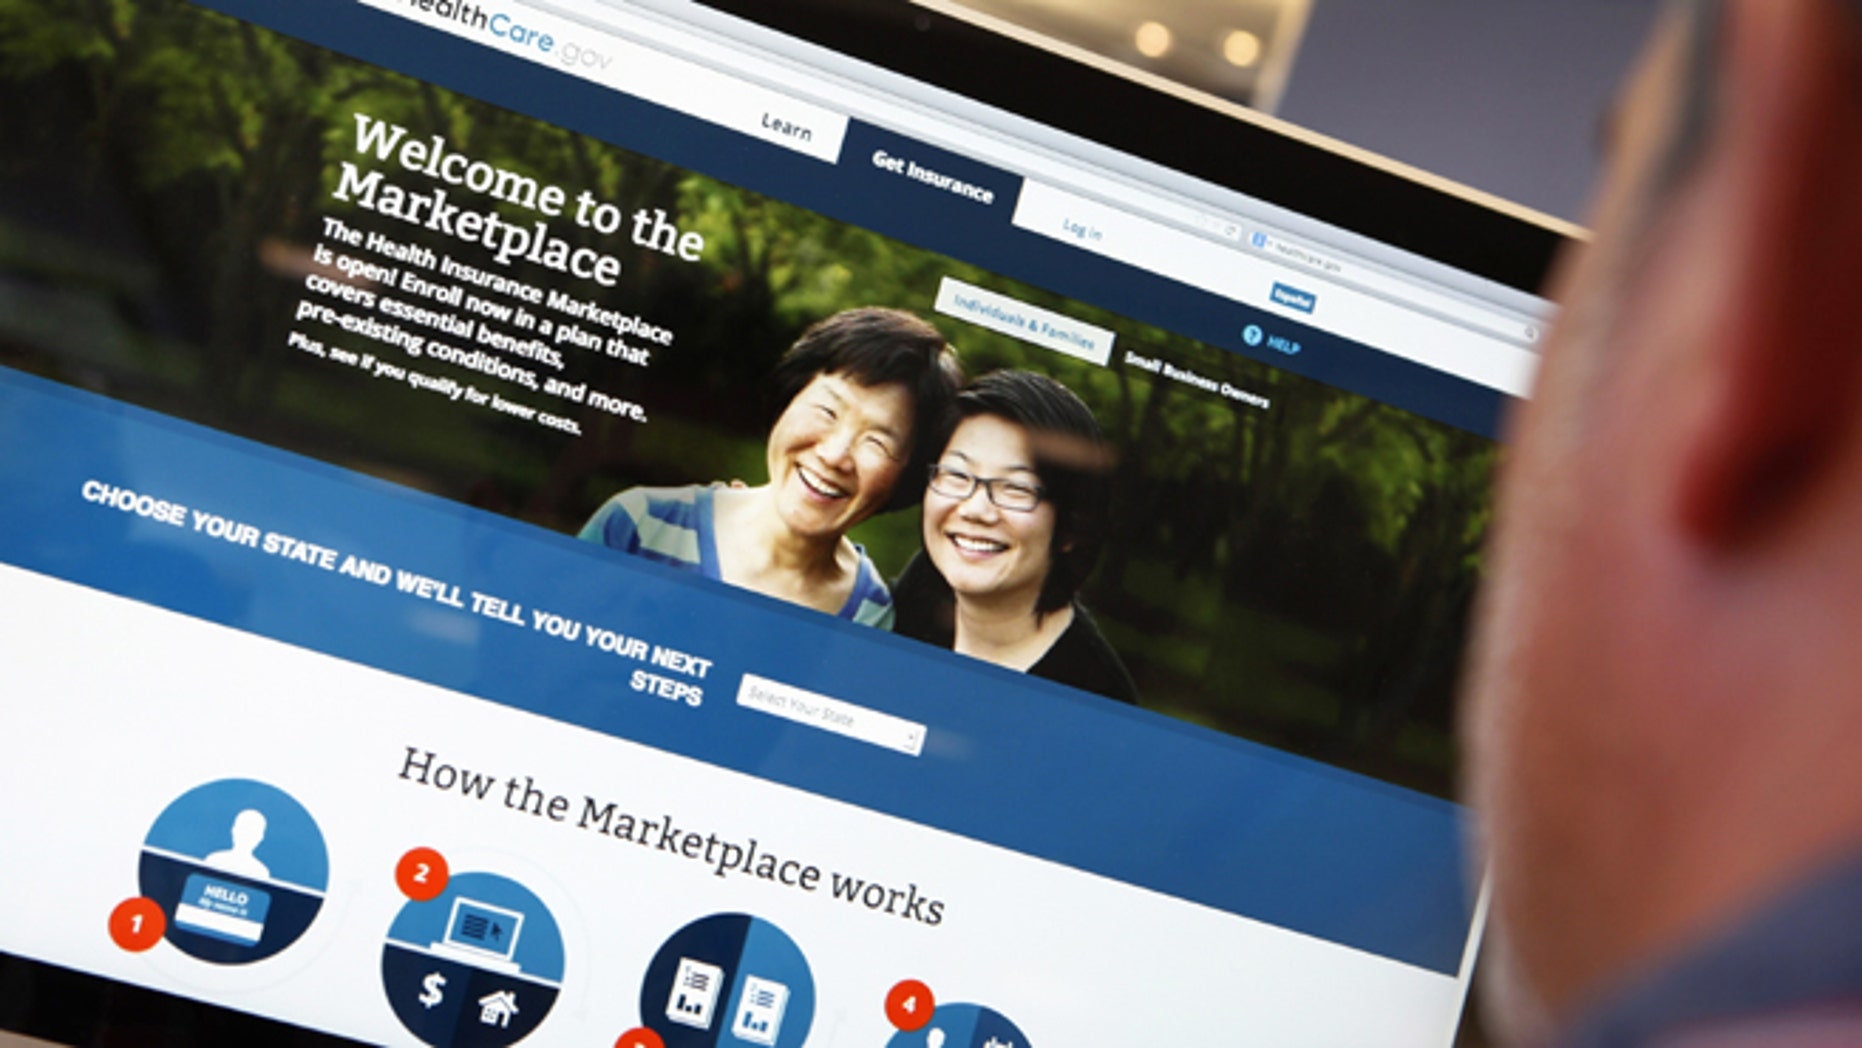 A man looks over the Affordable Care Act (commonly known as Obamacare) signup page on the HealthCare.gov website.